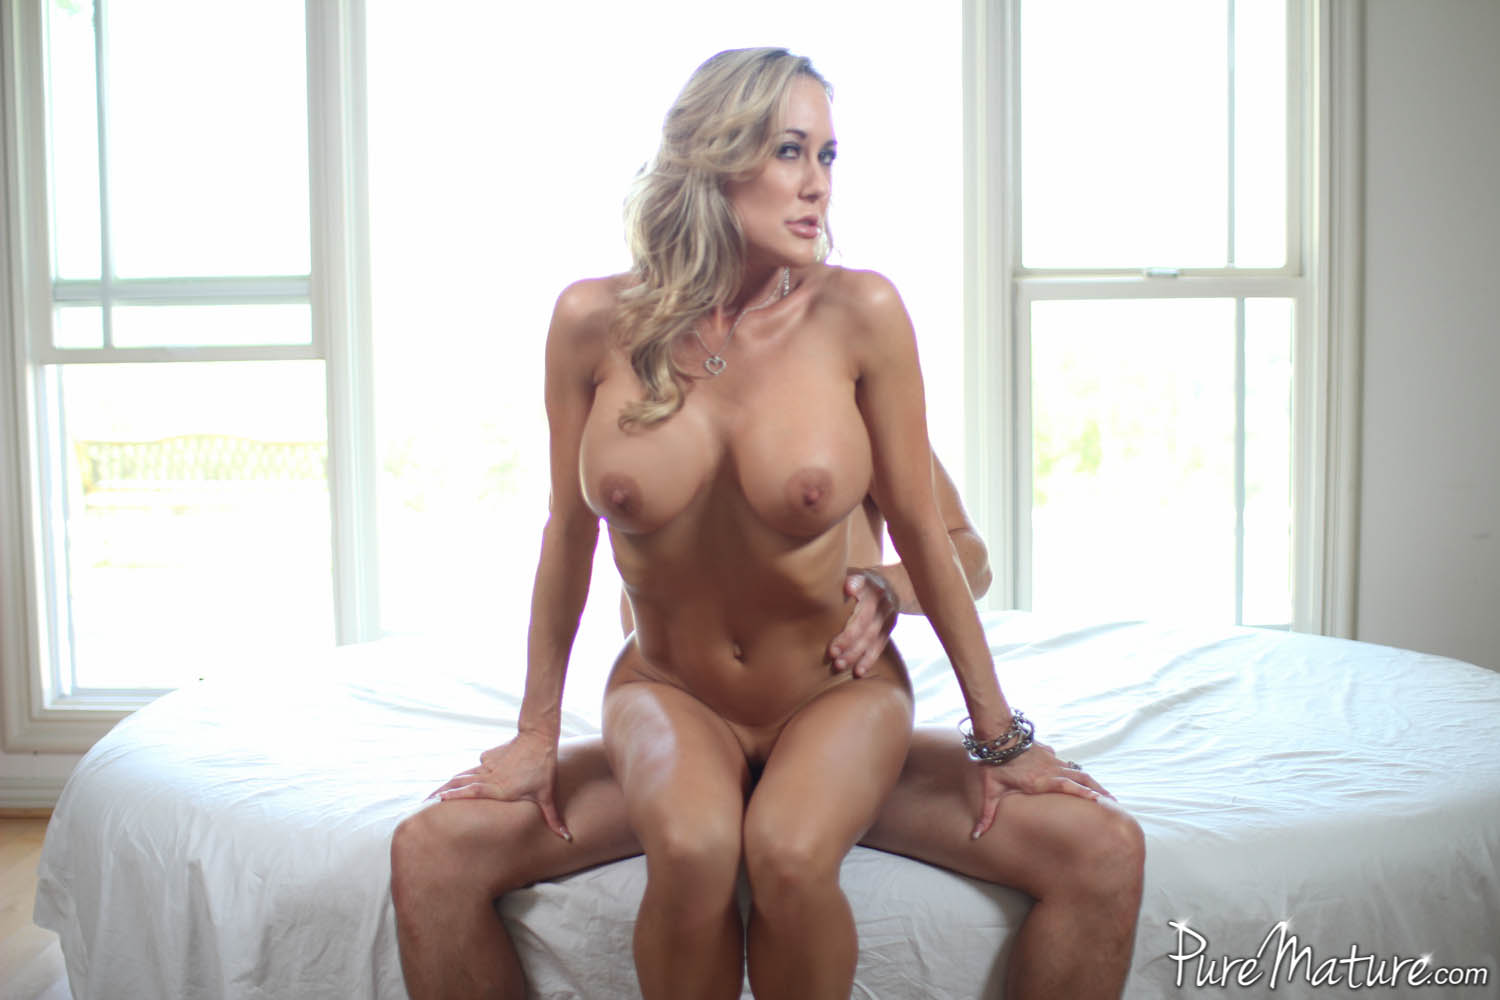 consider, that latina riding cock to orgasm alone! Rather valuable